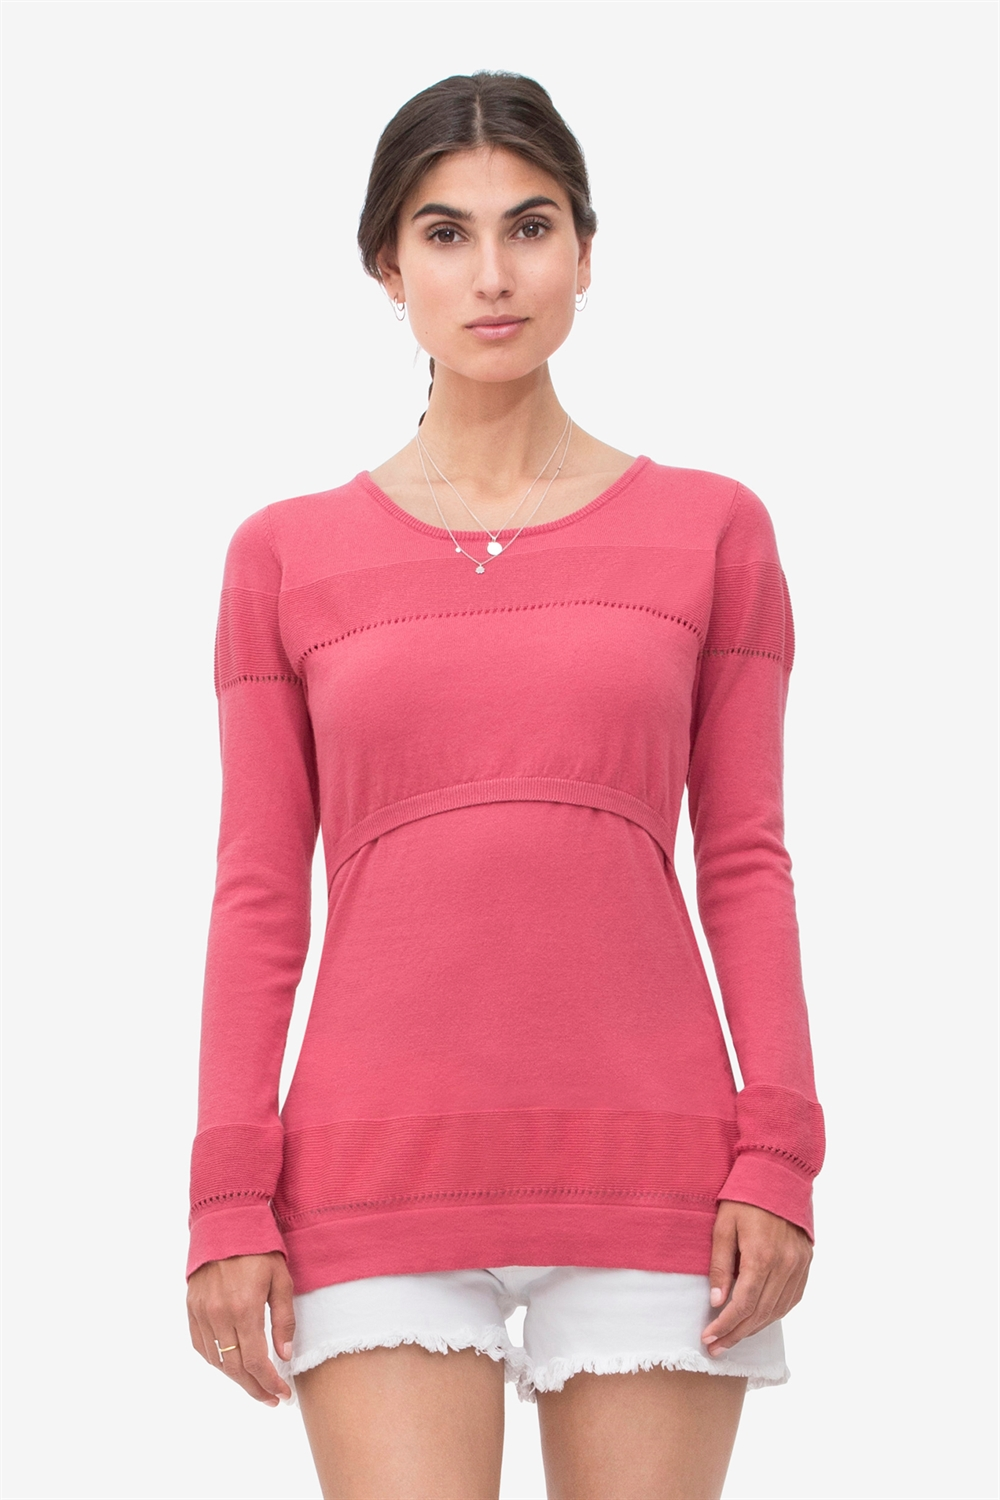 Coral nursing shirt with knit knit pattern- 100% organic cotton knit